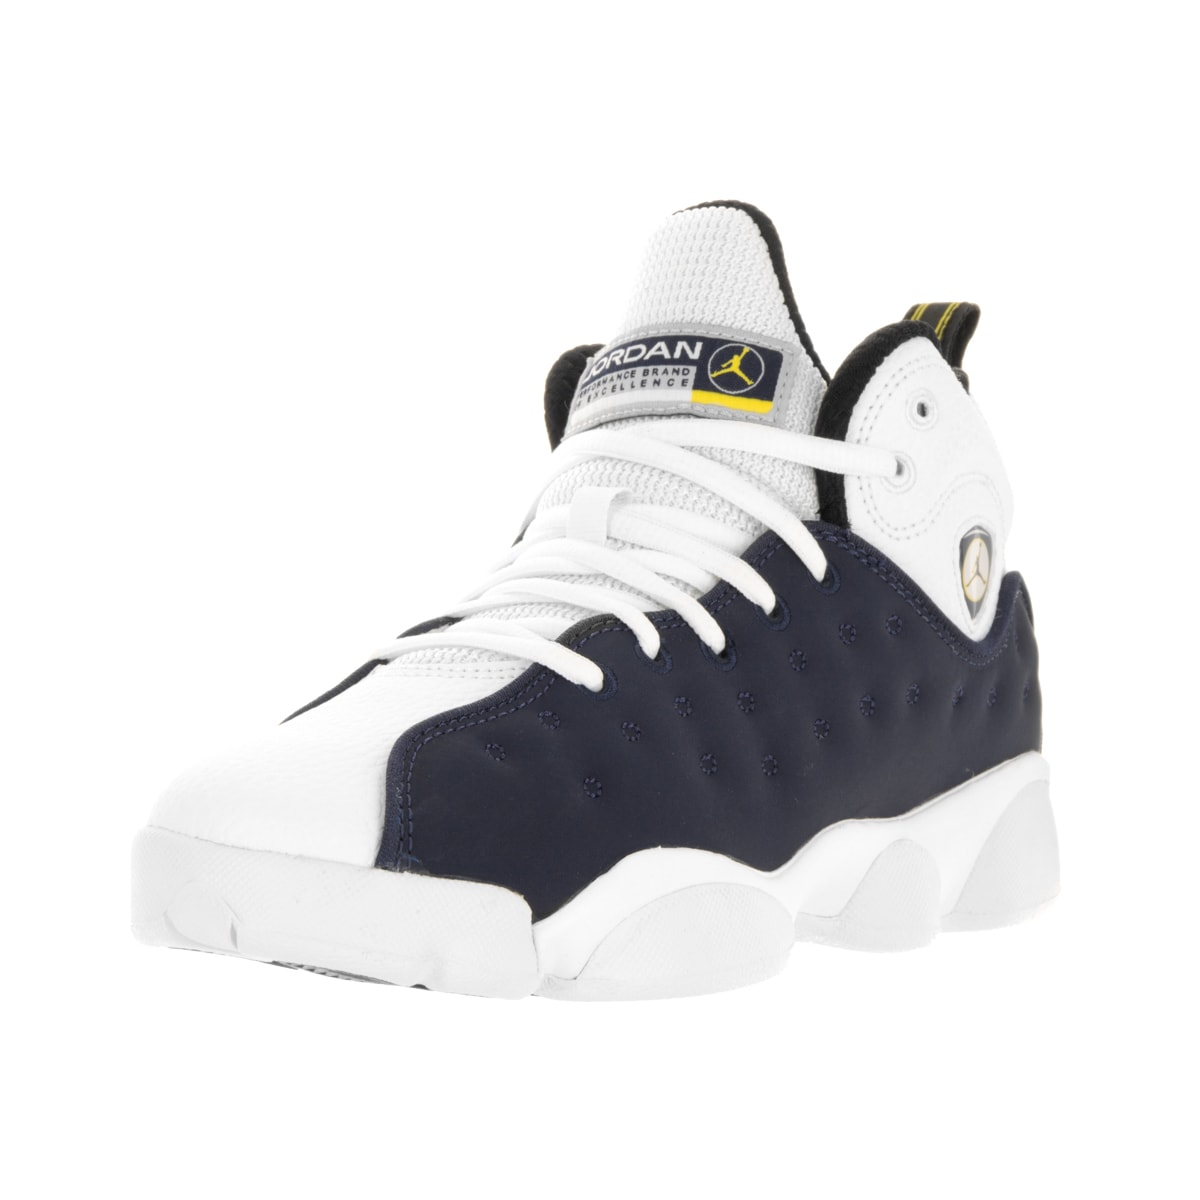 quality design 46eb0 21acc Shop Nike Kid's Jordan Jumpman Team II Navy/White Leather Basketball Shoes  - Free Shipping Today - Overstock - 13394521